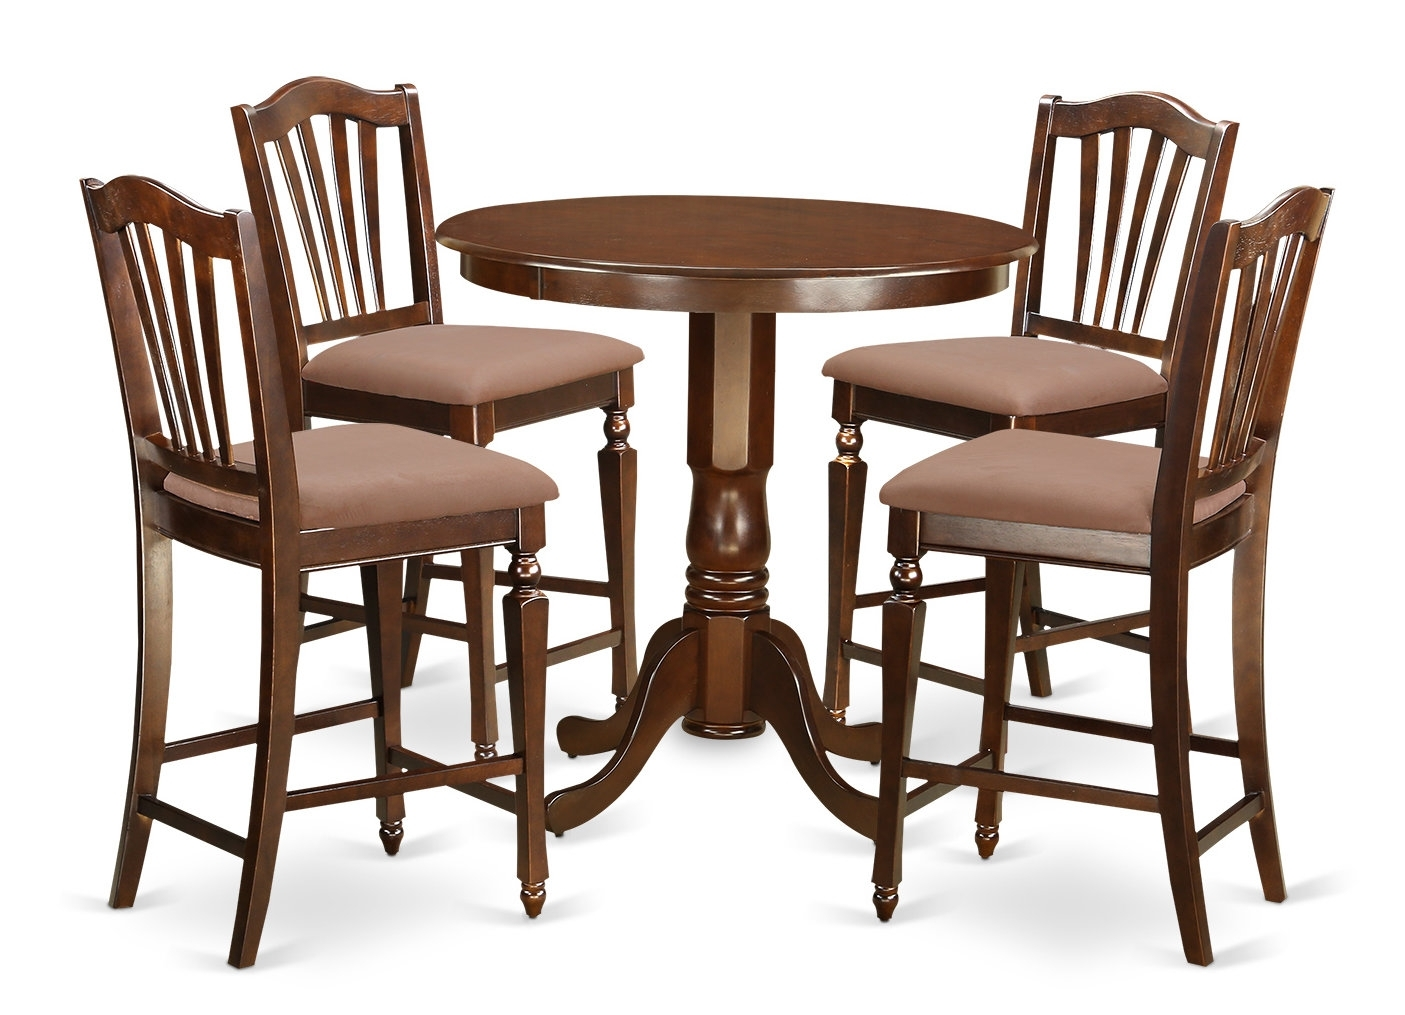 East West Jackson 5 Piece Counter Height Pub Table Set | Wayfair Pertaining To 2018 Jaxon Grey 6 Piece Rectangle Extension Dining Sets With Bench & Wood Chairs (Photo 13 of 20)